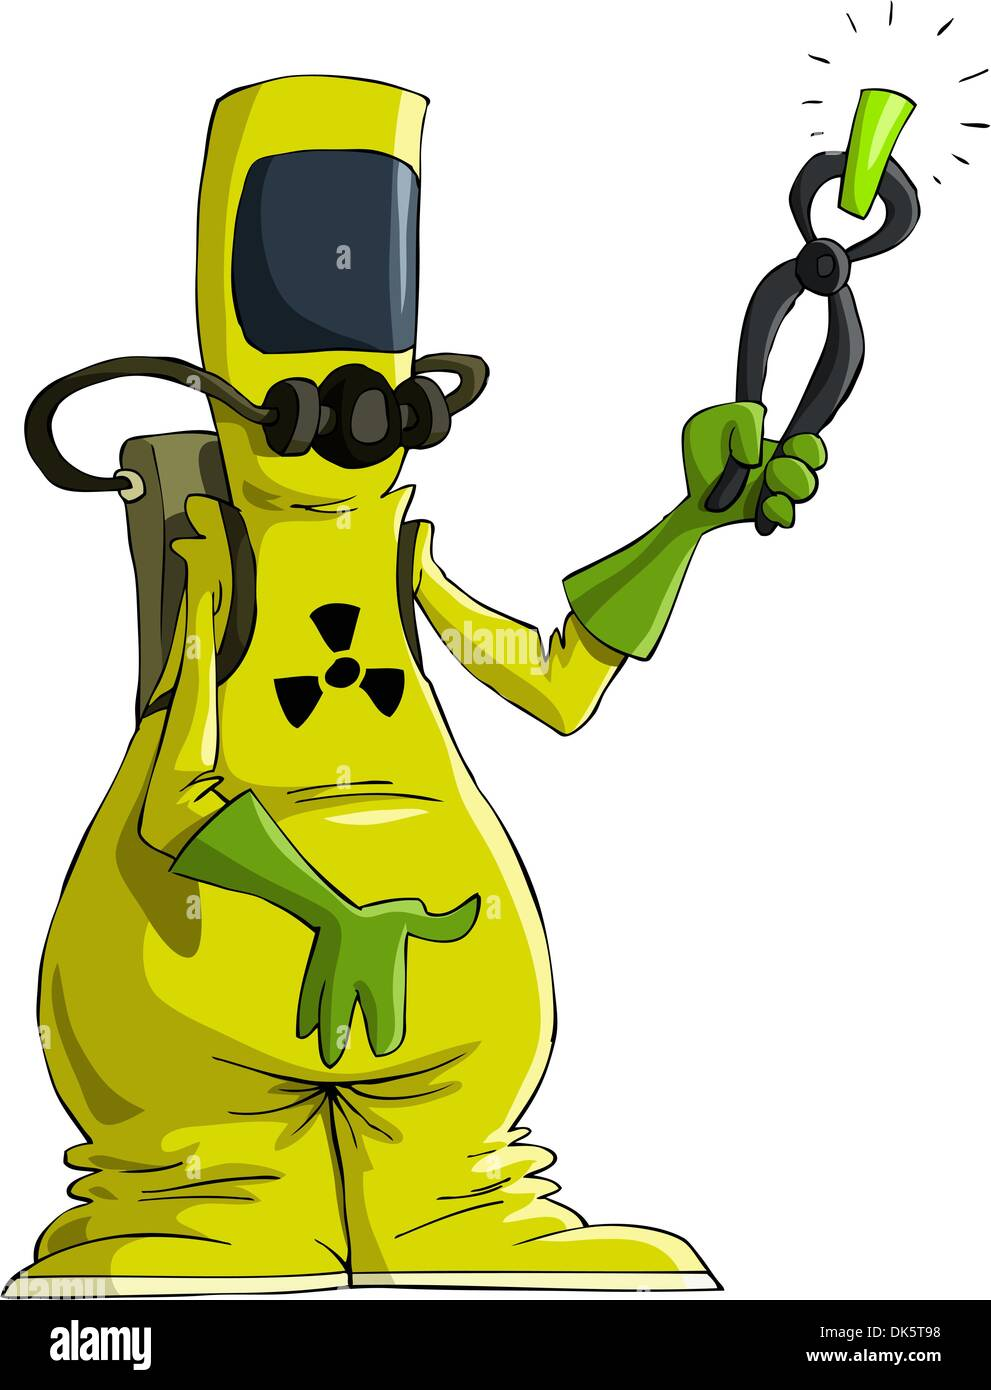 Cartoon man in radiation suit, vector illustration - Stock Image